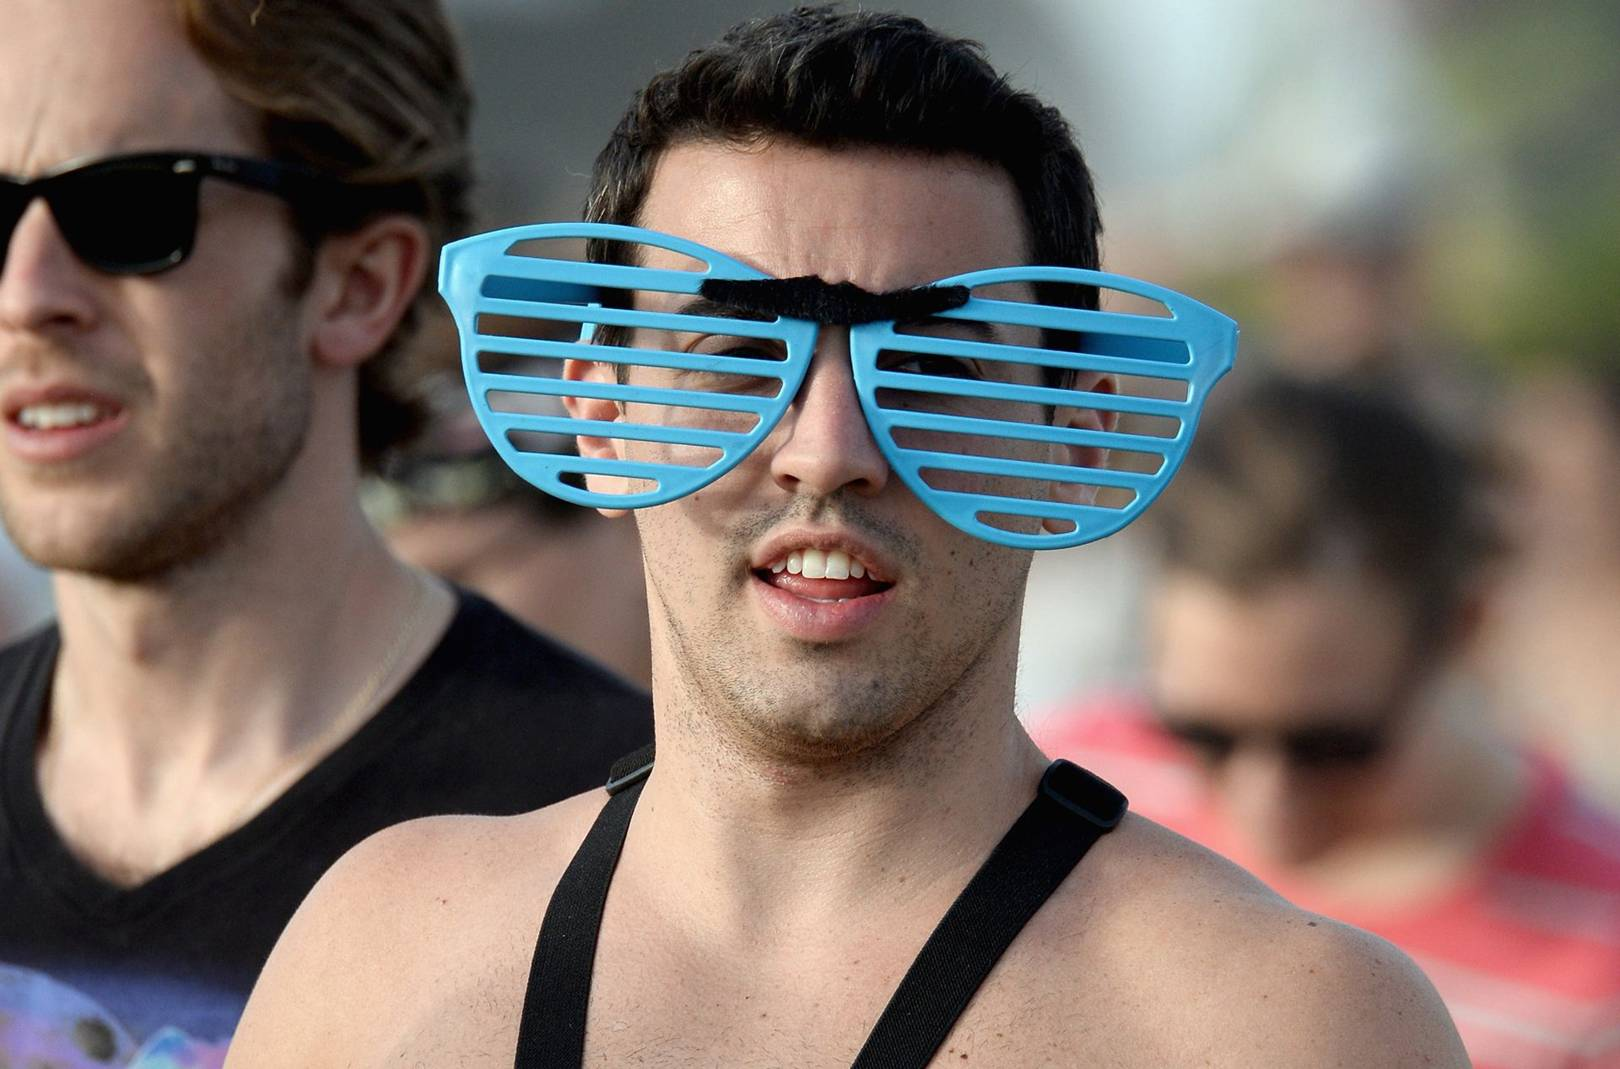 What to wear at a music festival (and what to avoid)  6bf8e2ad2cef